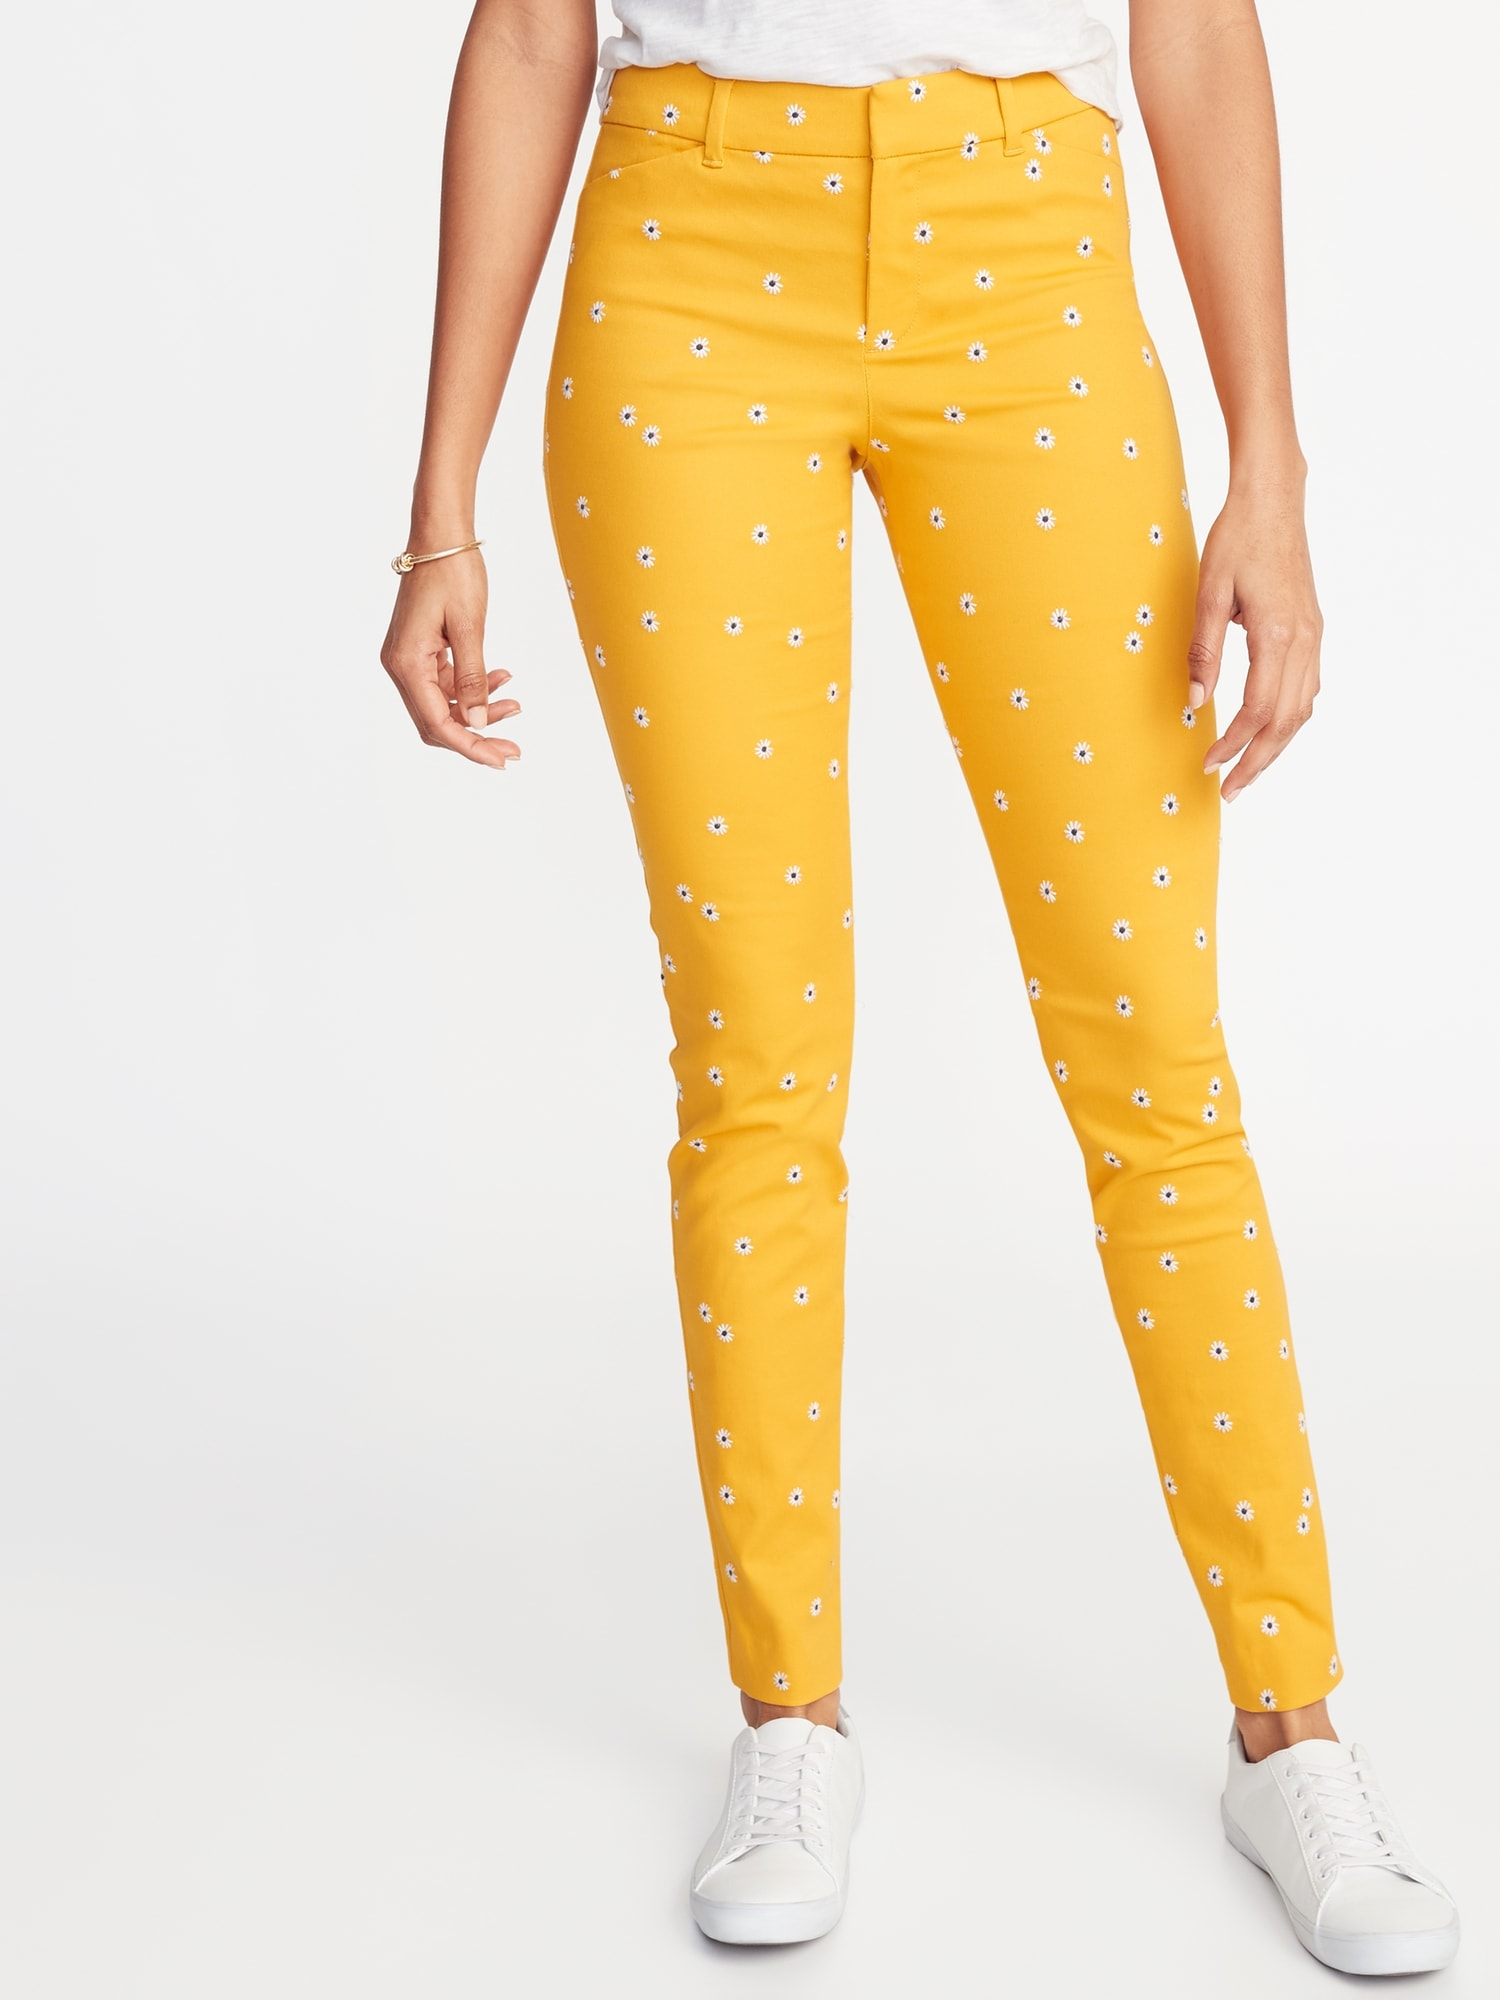 7d91b26f4 Mid-Rise Daisy-Print Pixie Full-Length Pants for Women | Old Navy